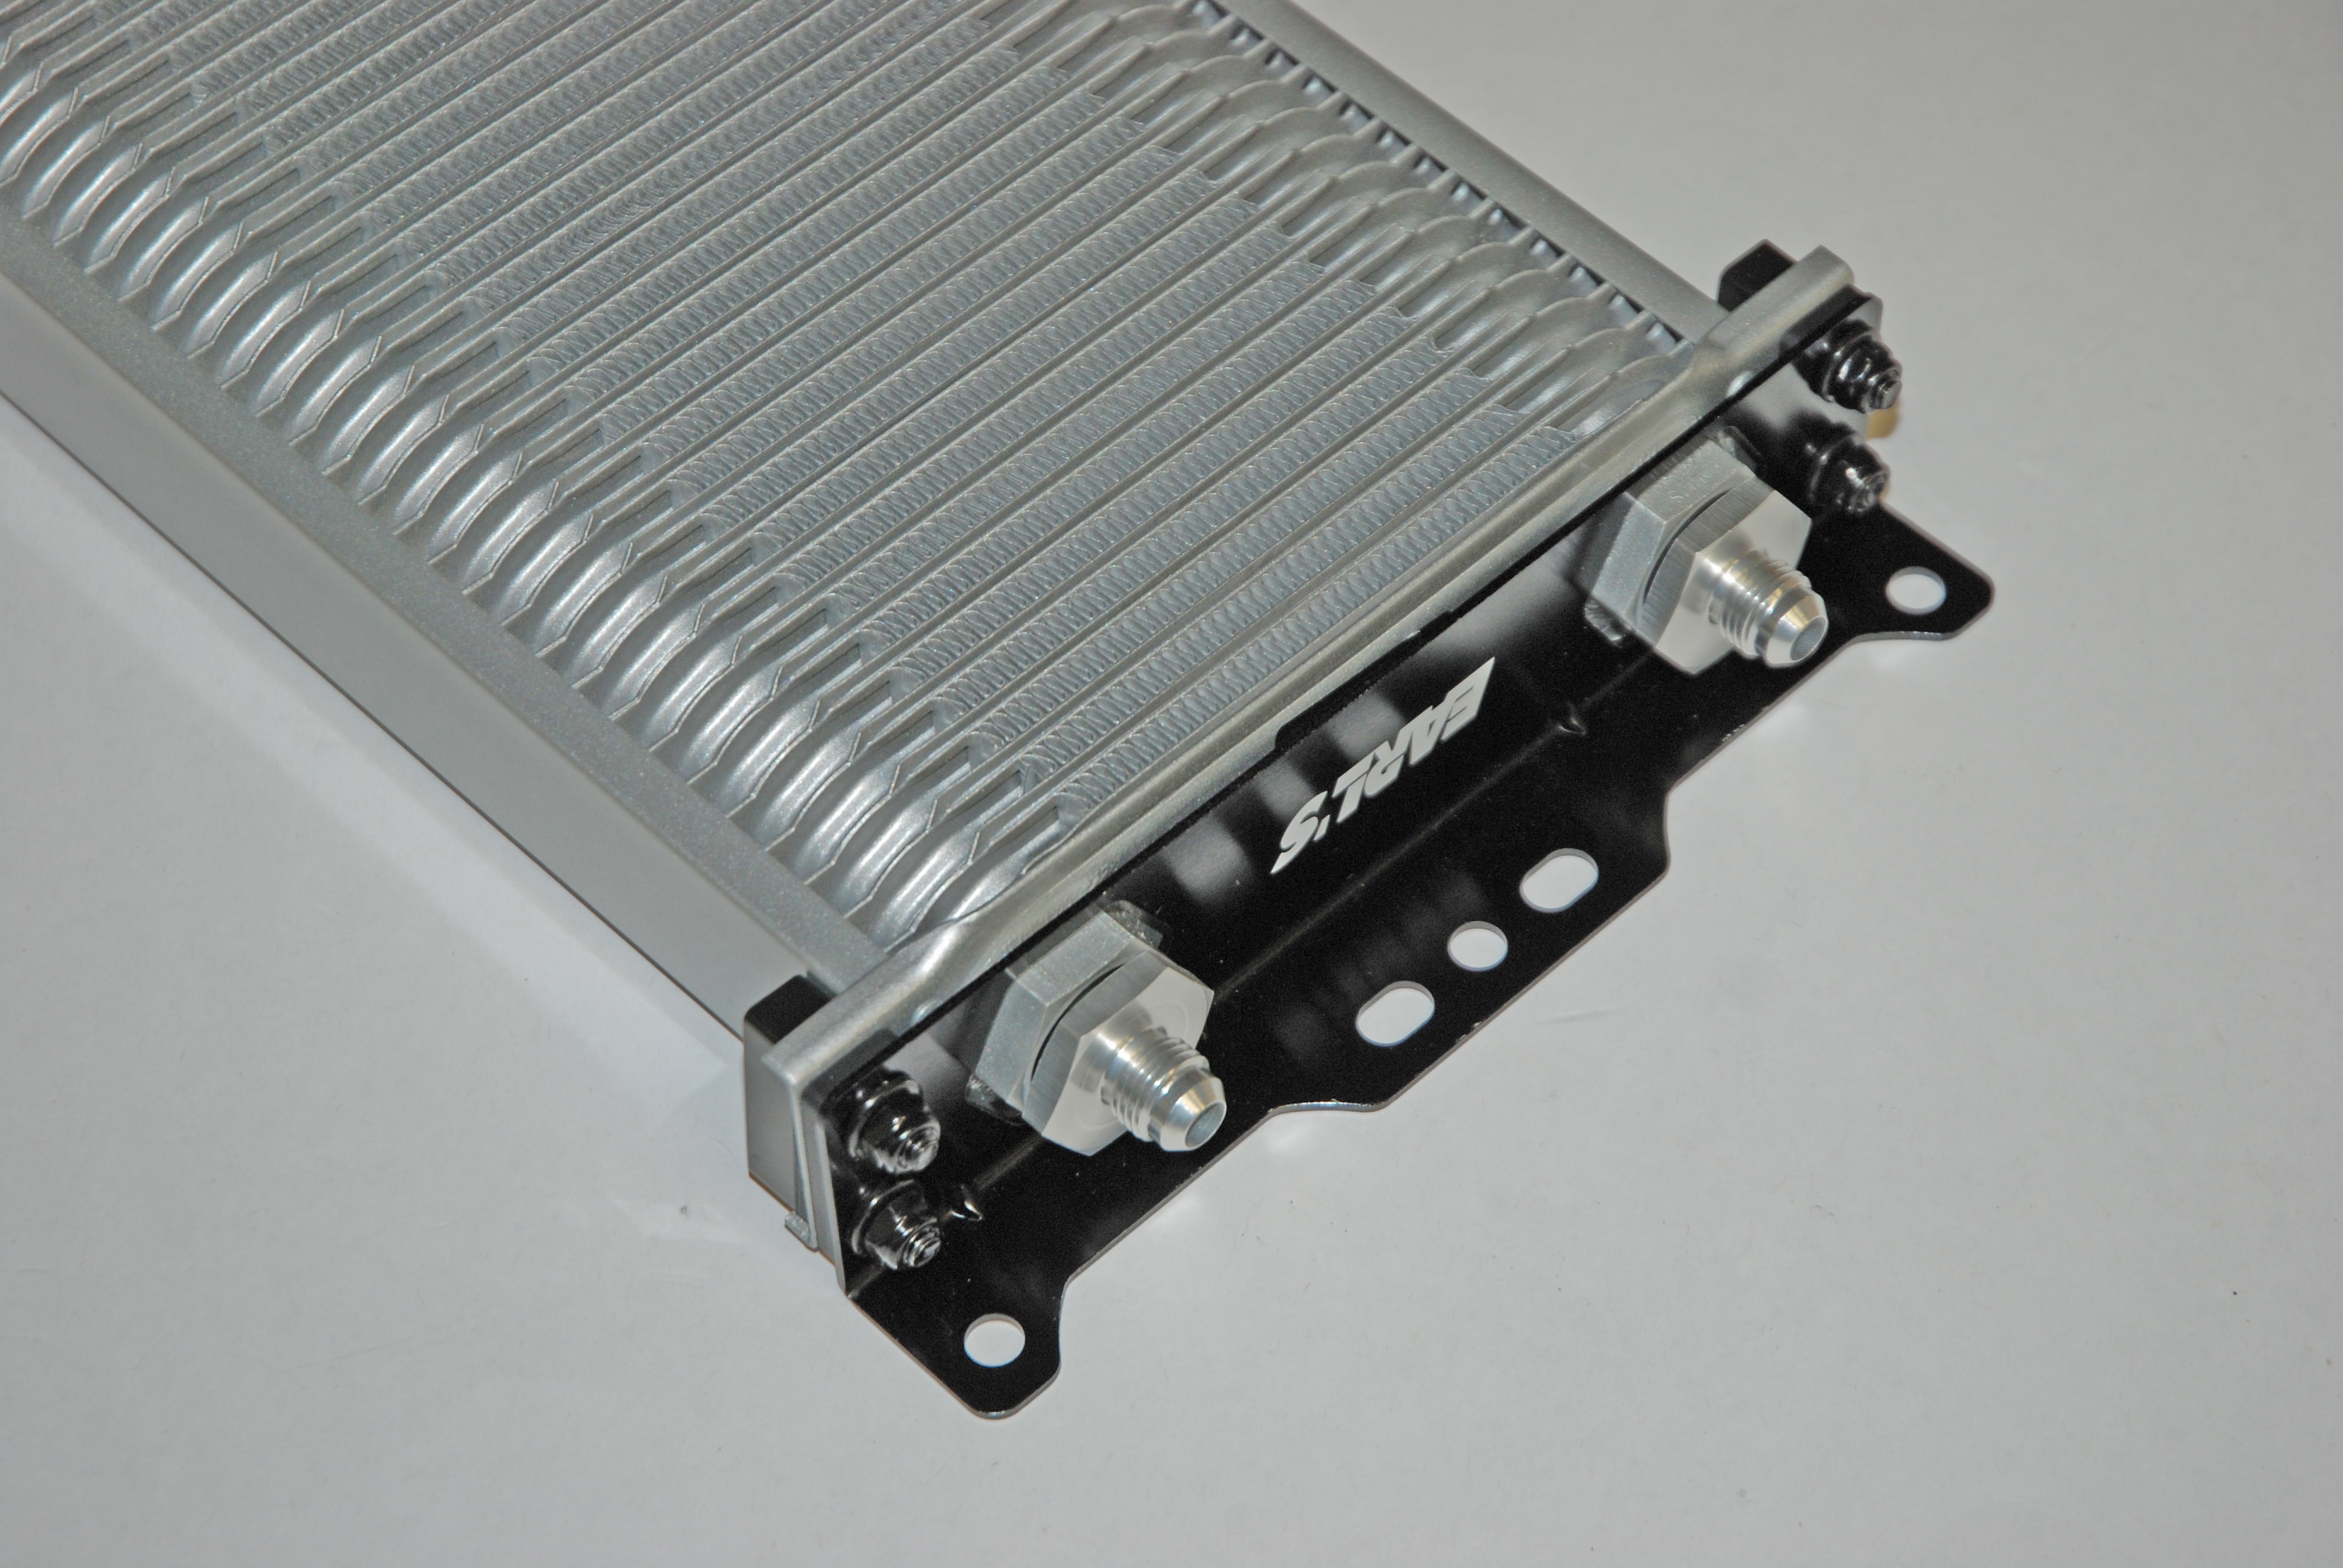 Best Transmission Coolers How To Choose The Right Transmission Cooler